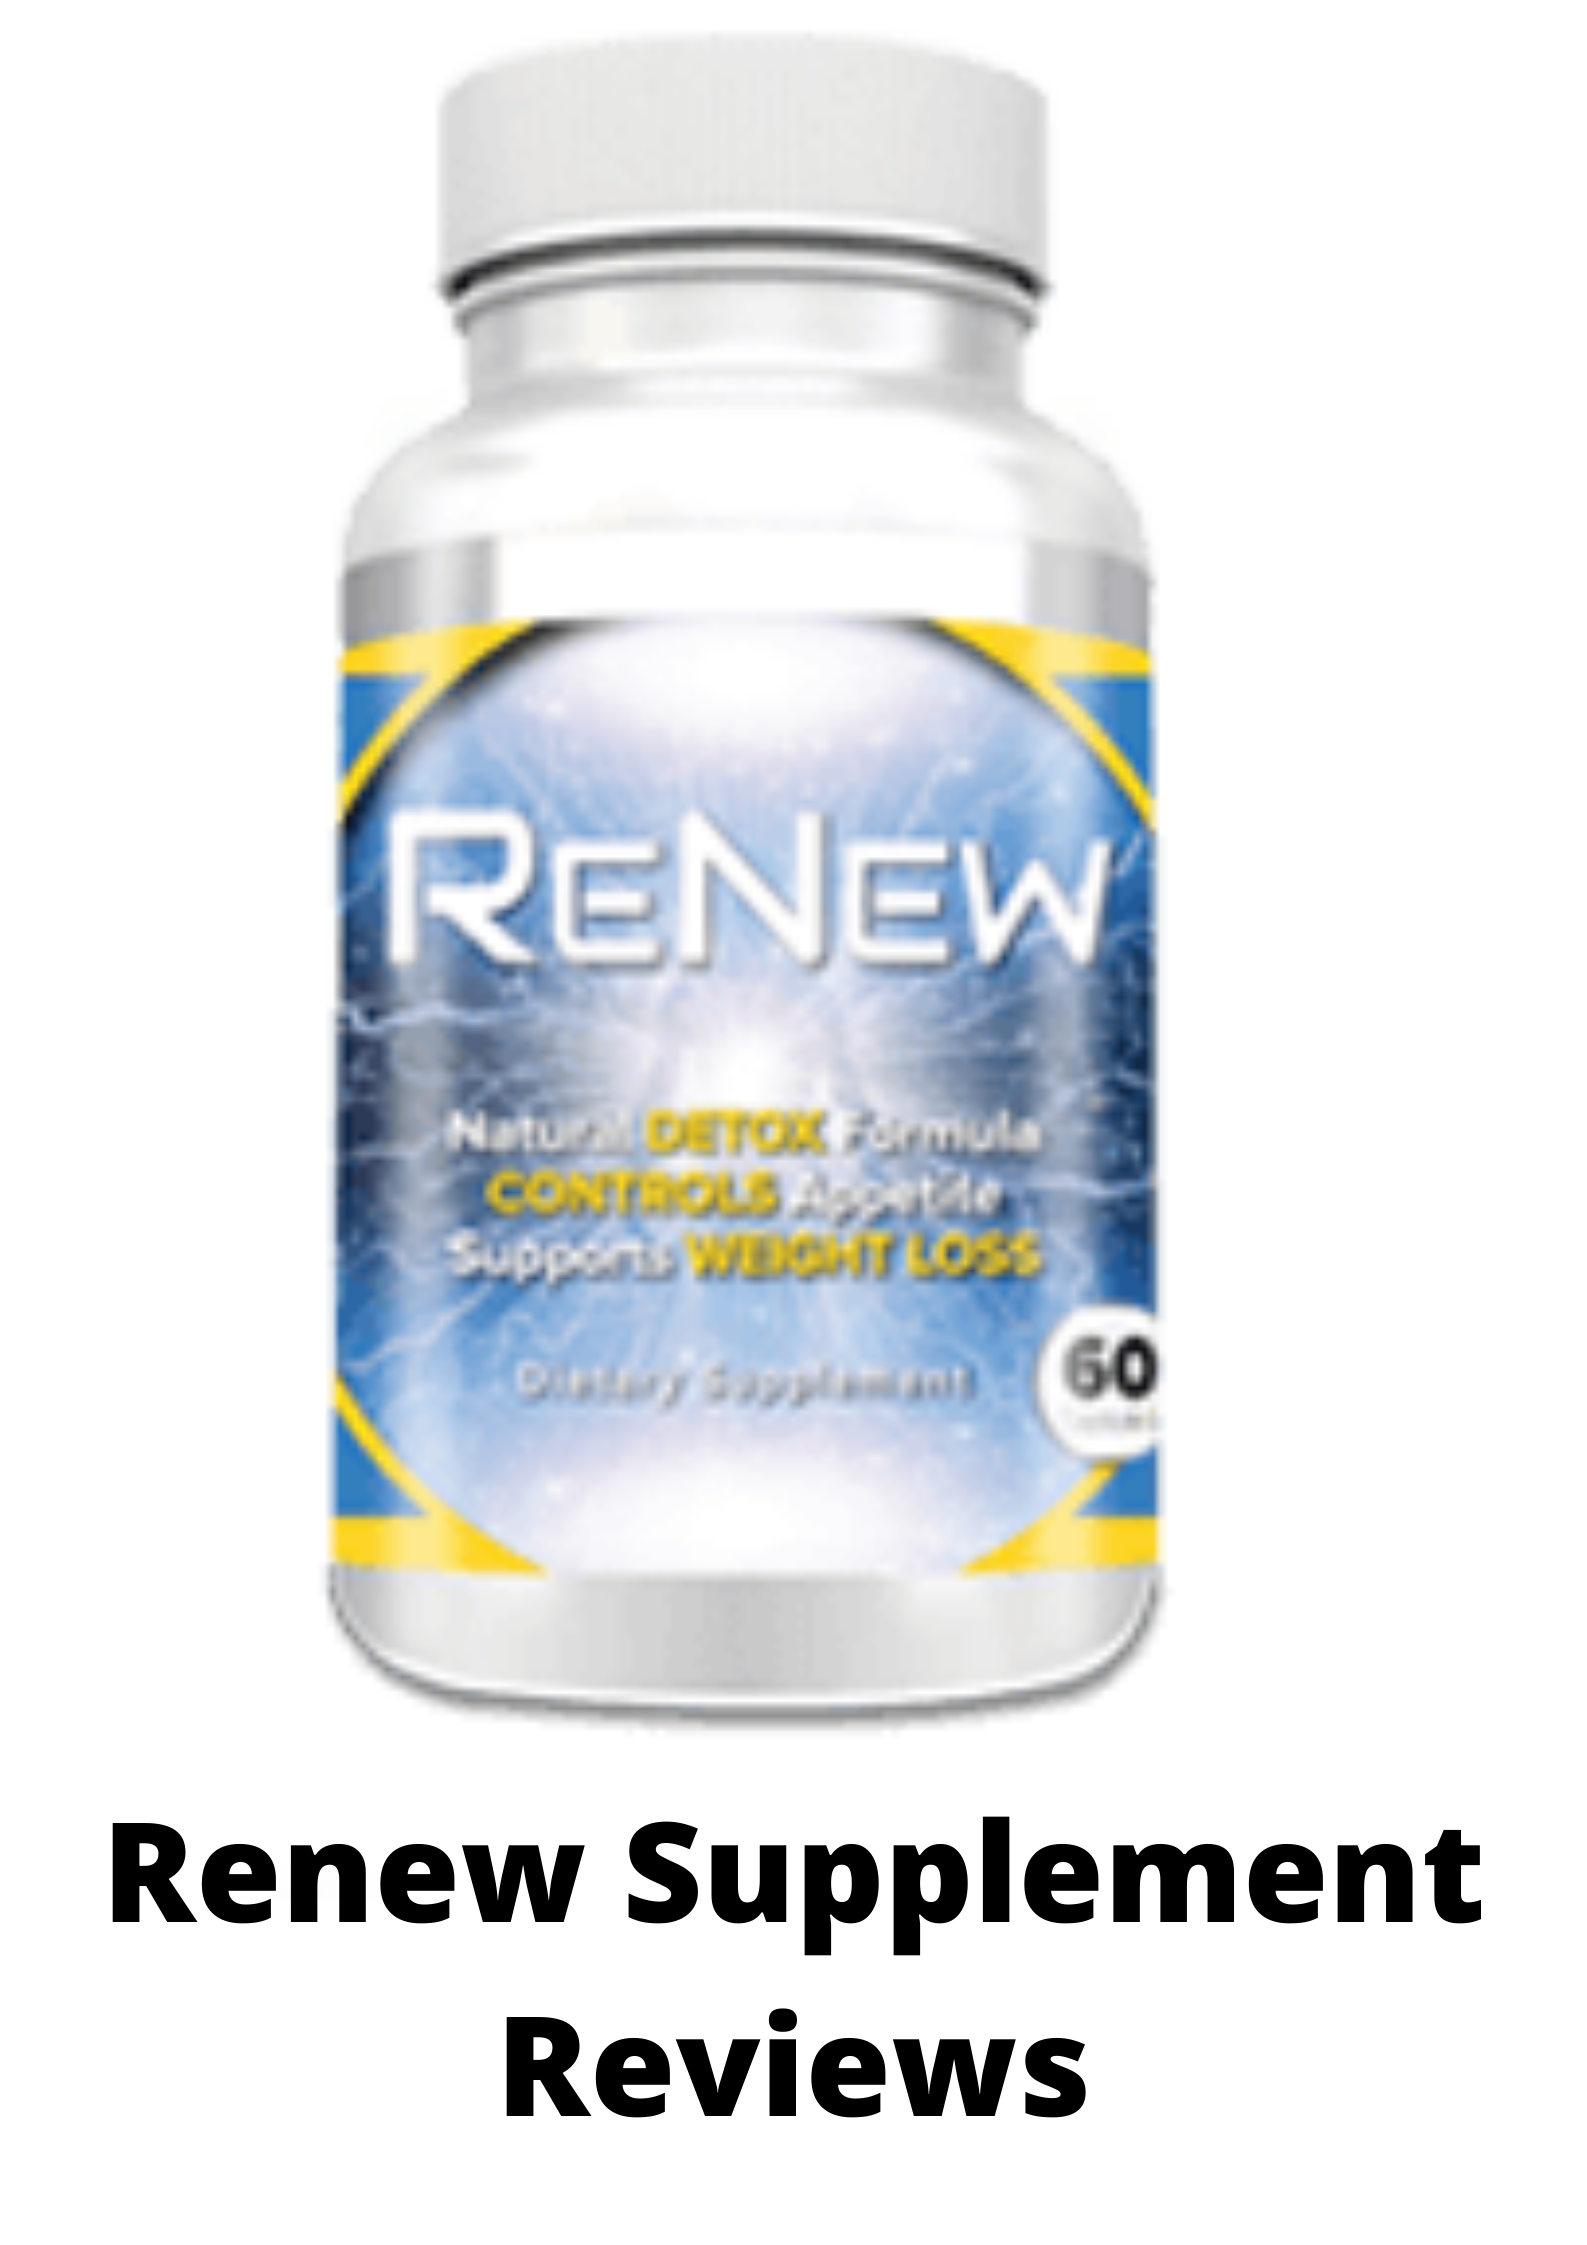 Renew Supplement Reviews